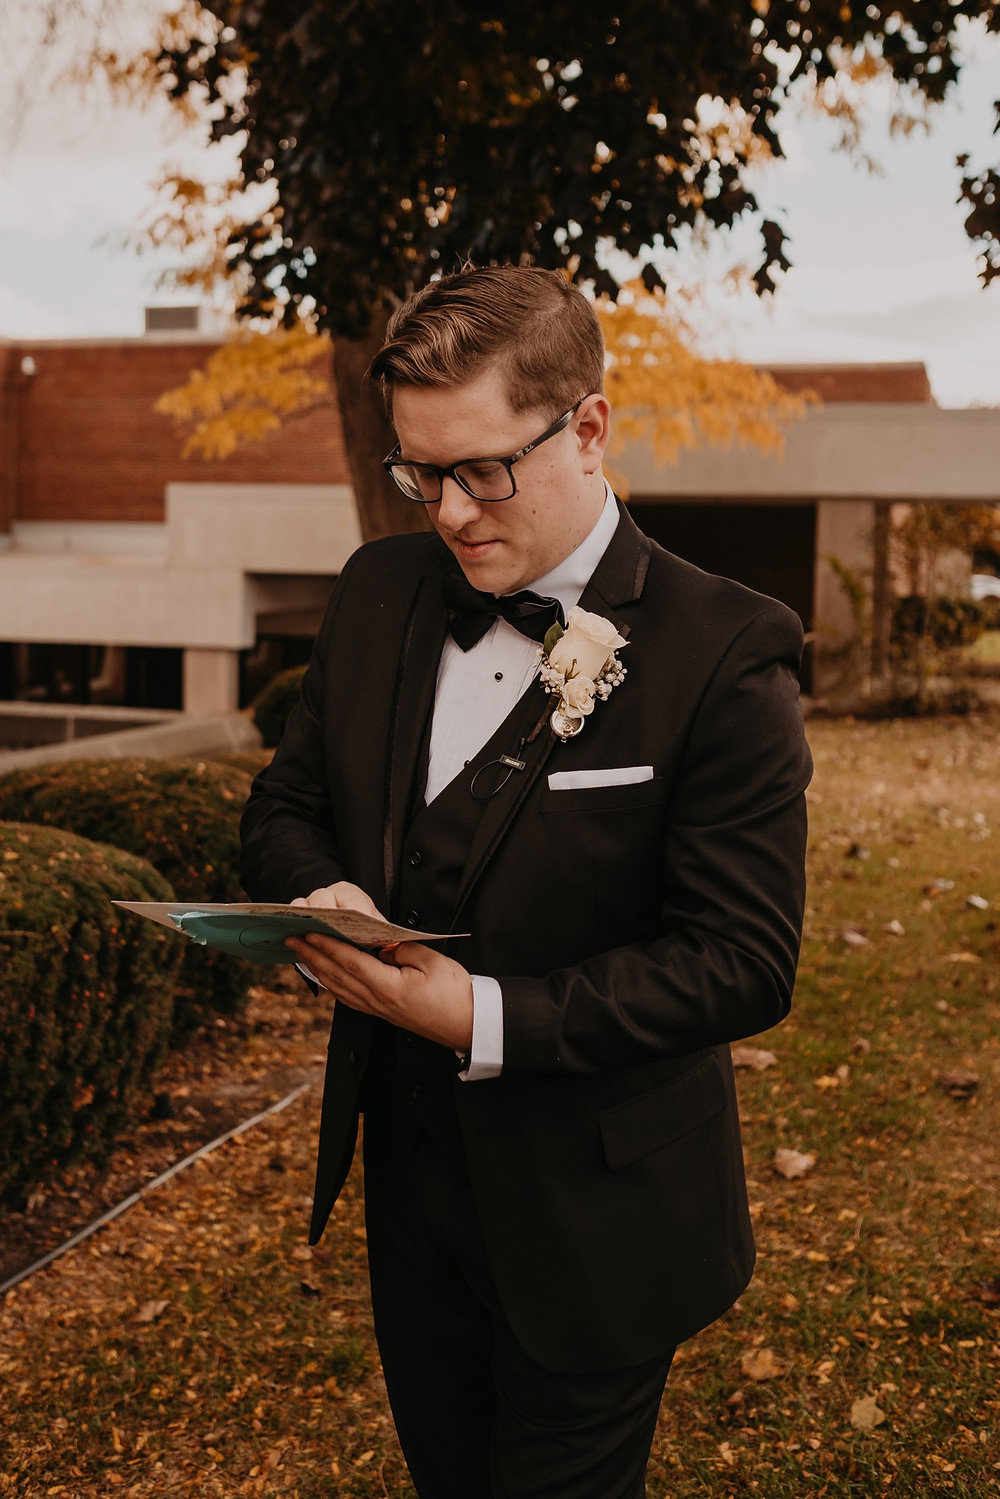 Groom reading letter from bride. Photographed by Nicole Leanne Photography.